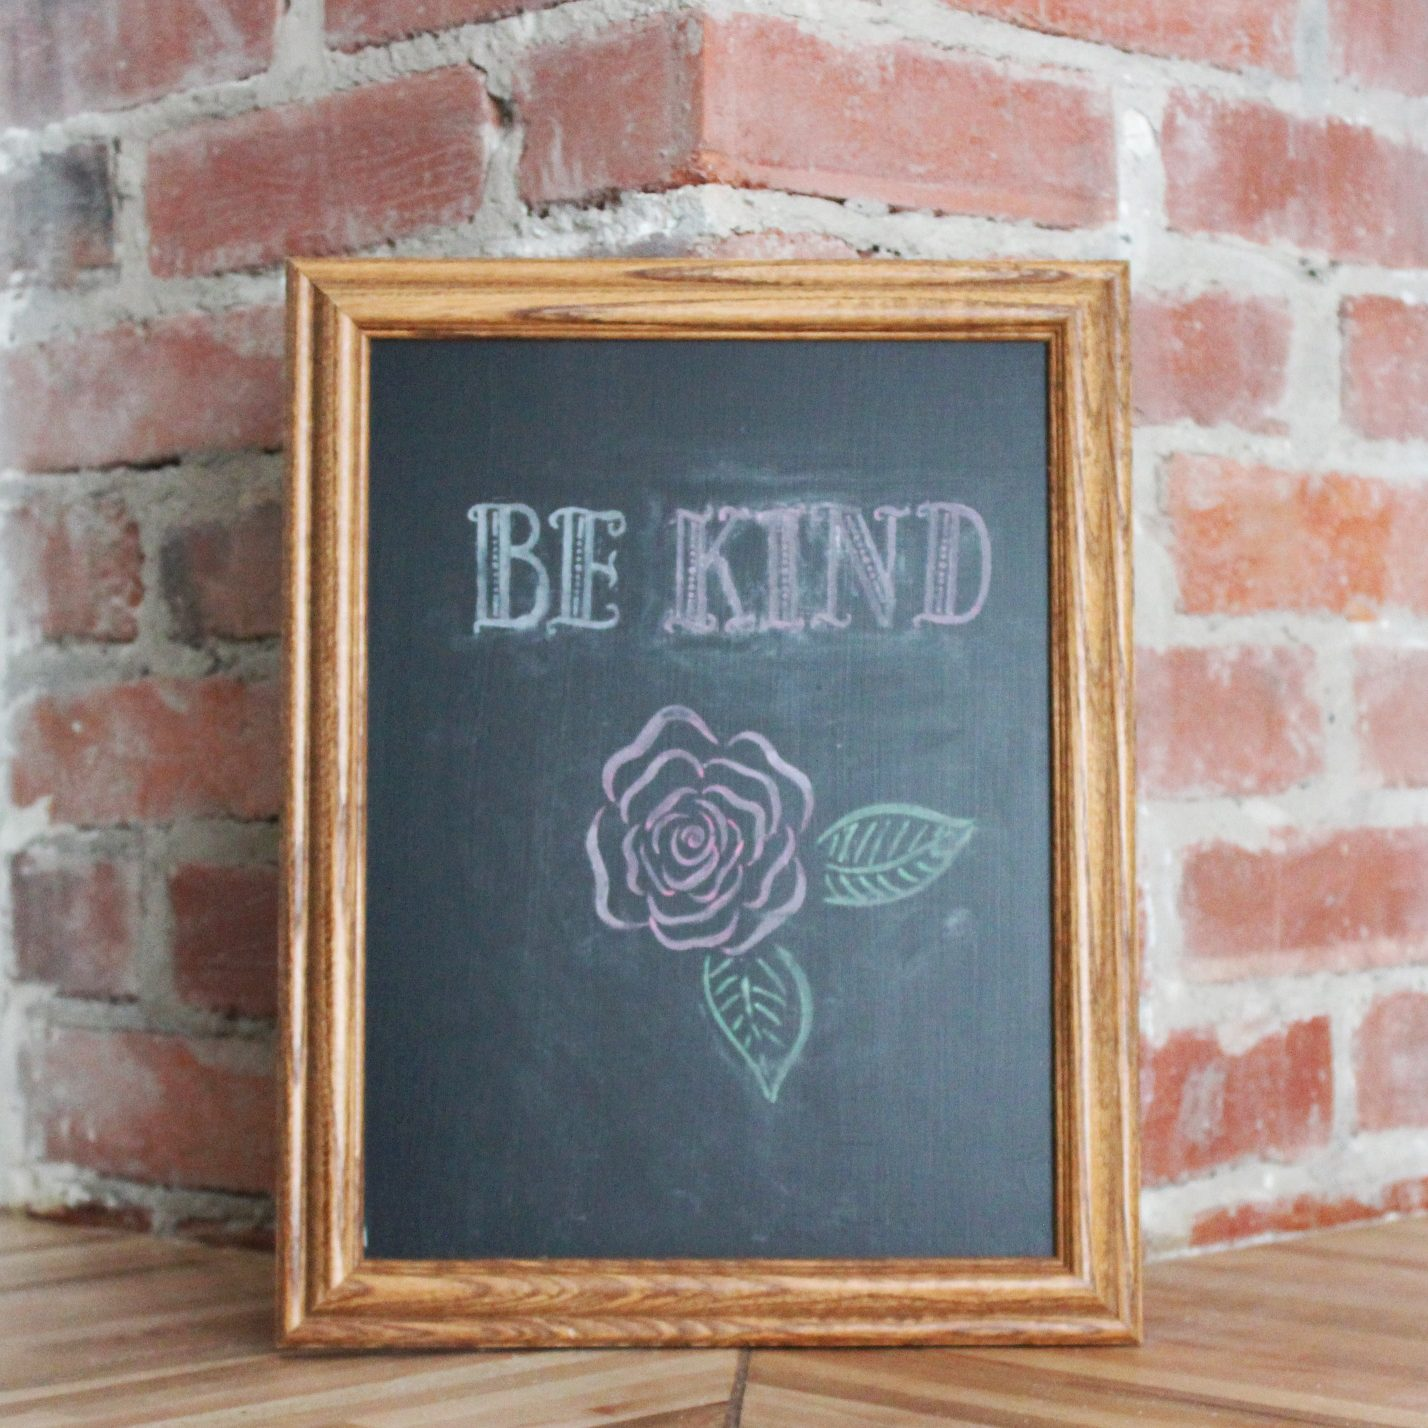 create-chalkboard-from-old-picture-frame-2879040-1